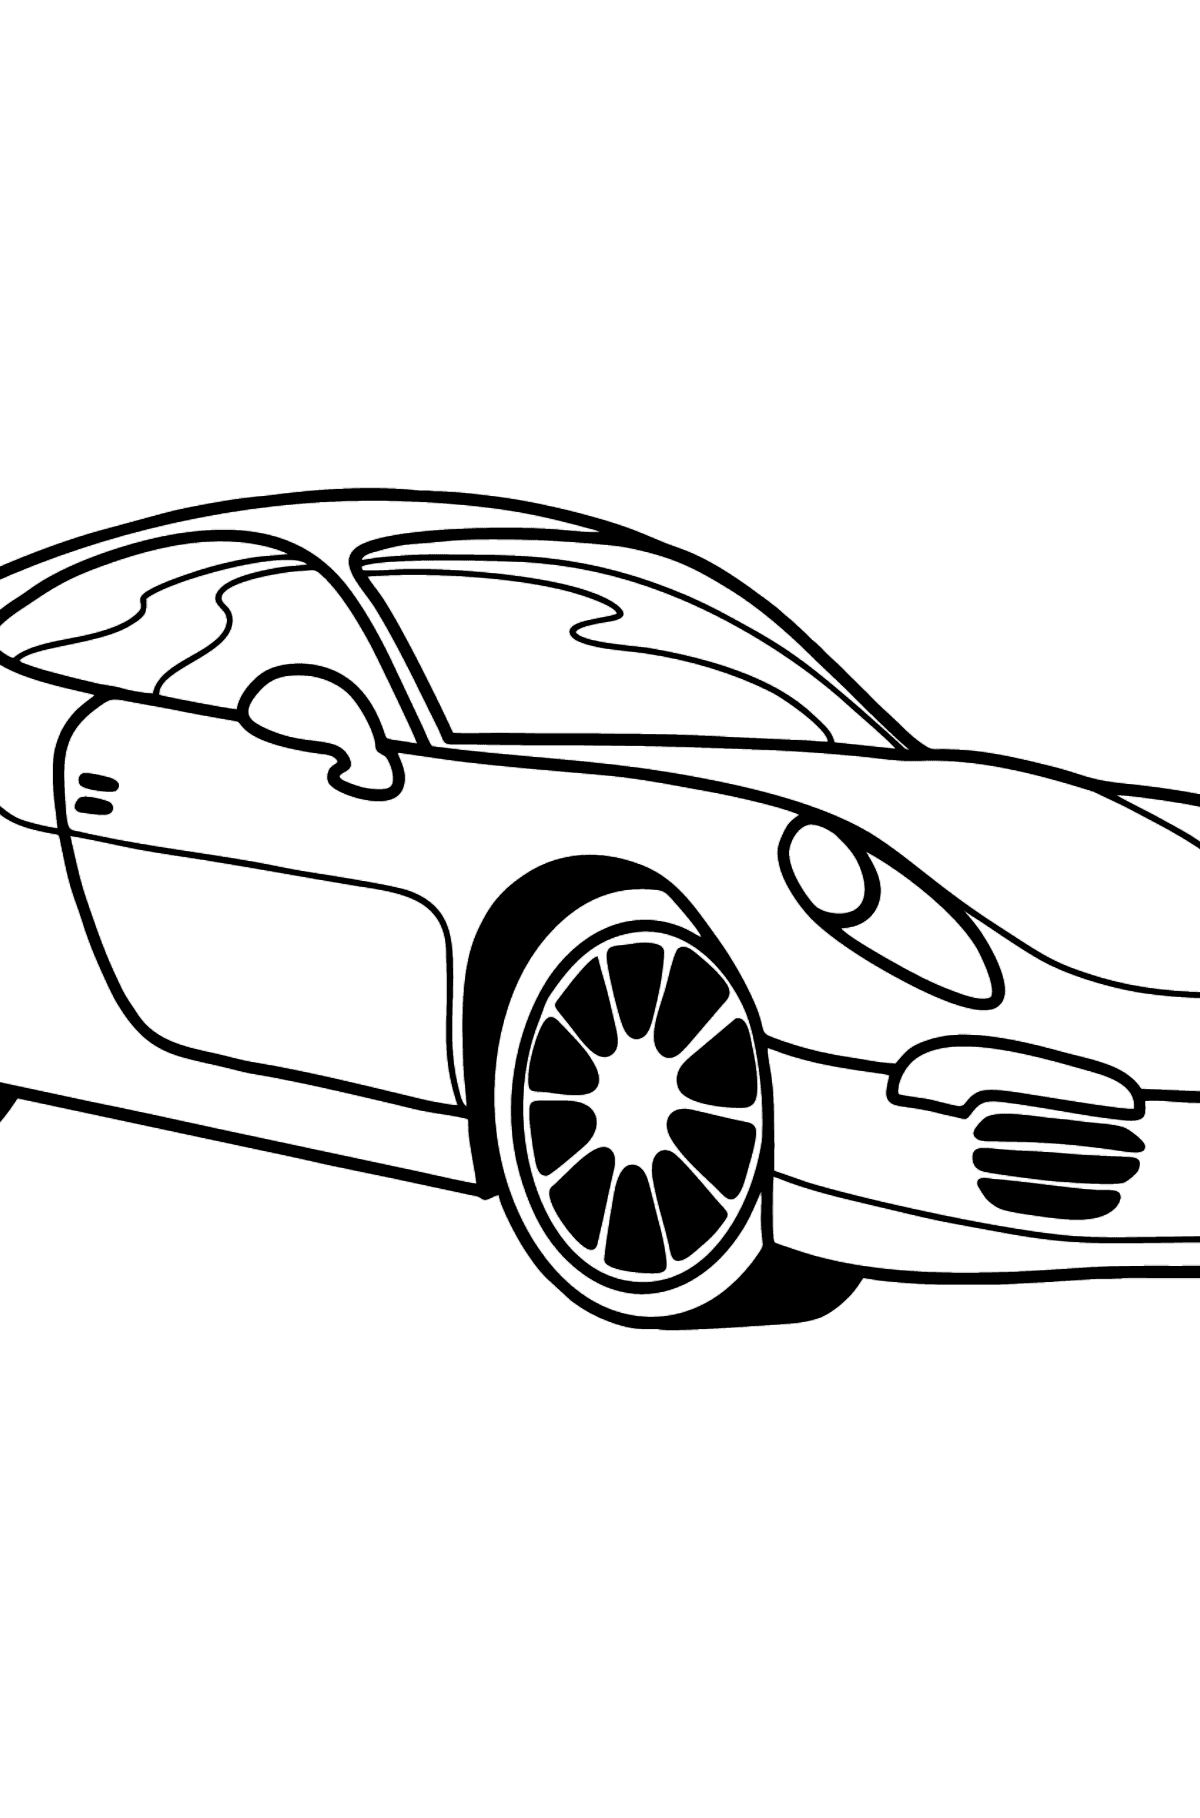 Porsche Cayman Sports Car coloring page - Coloring Pages for Kids